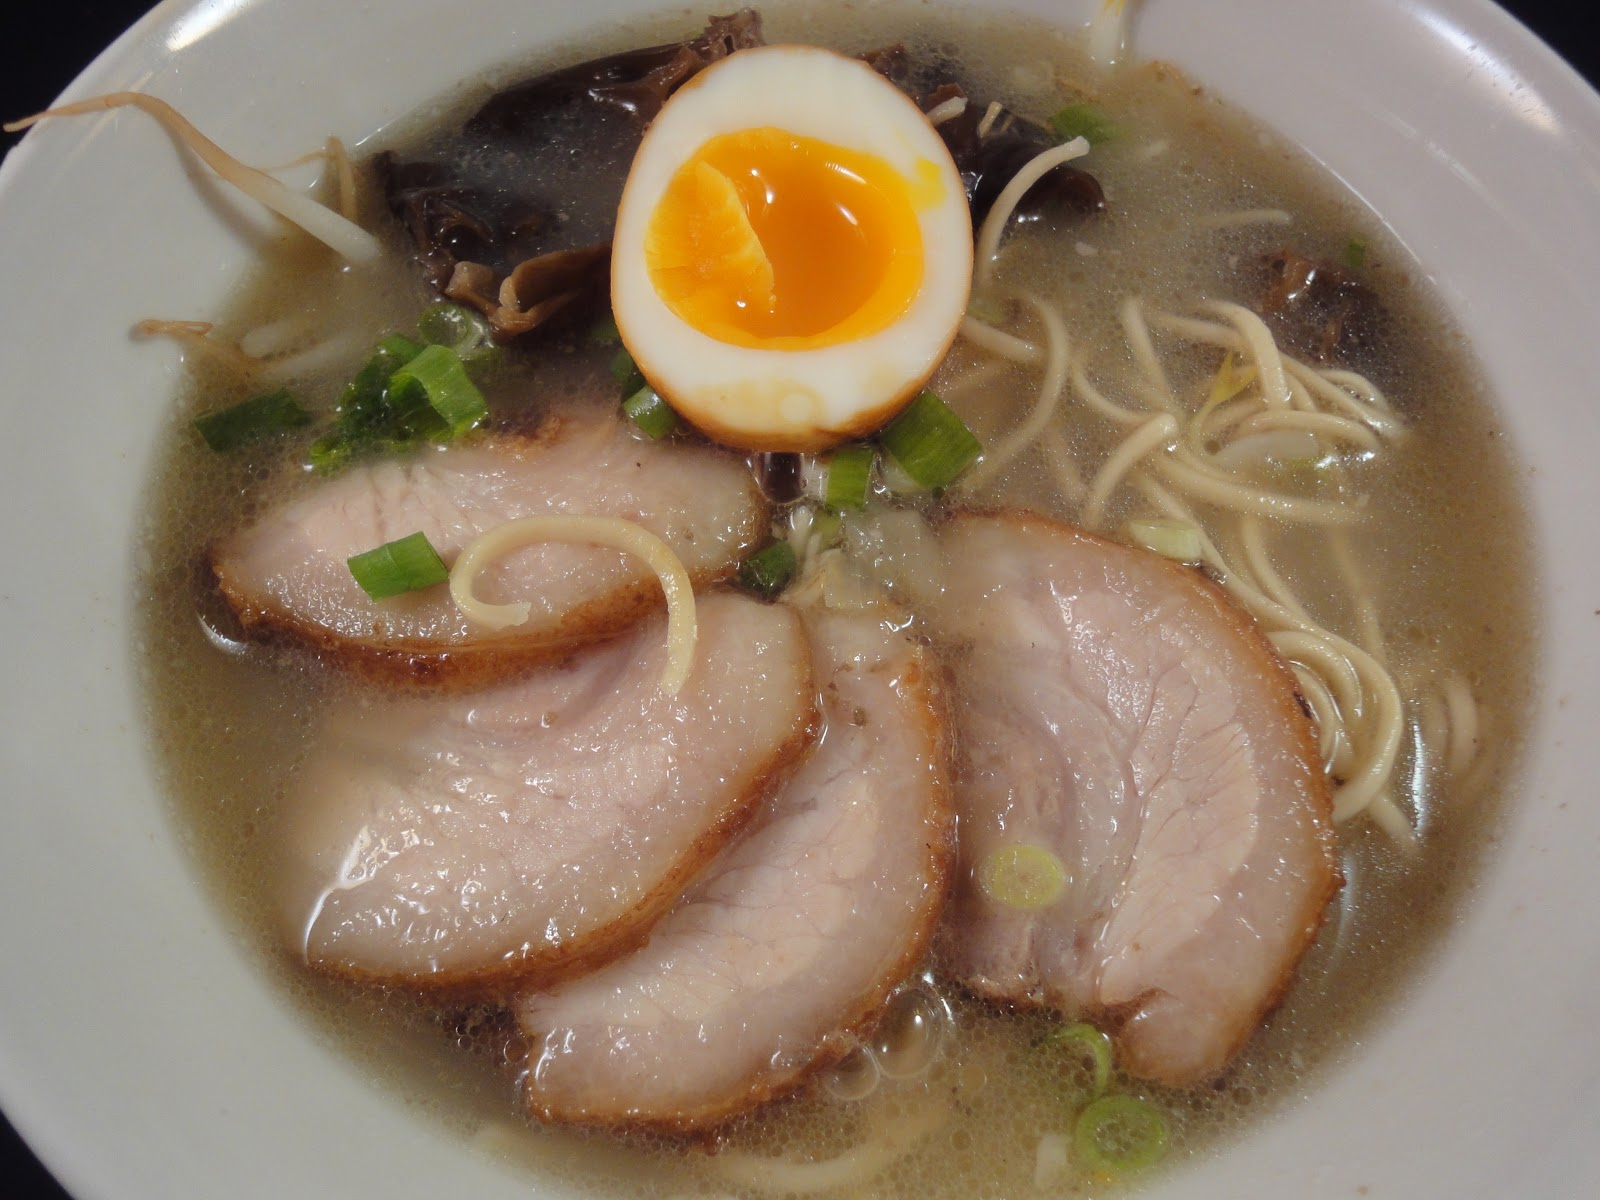 ... tonkotsu ramen die for dec any good depth menraku tonkotsu naturally